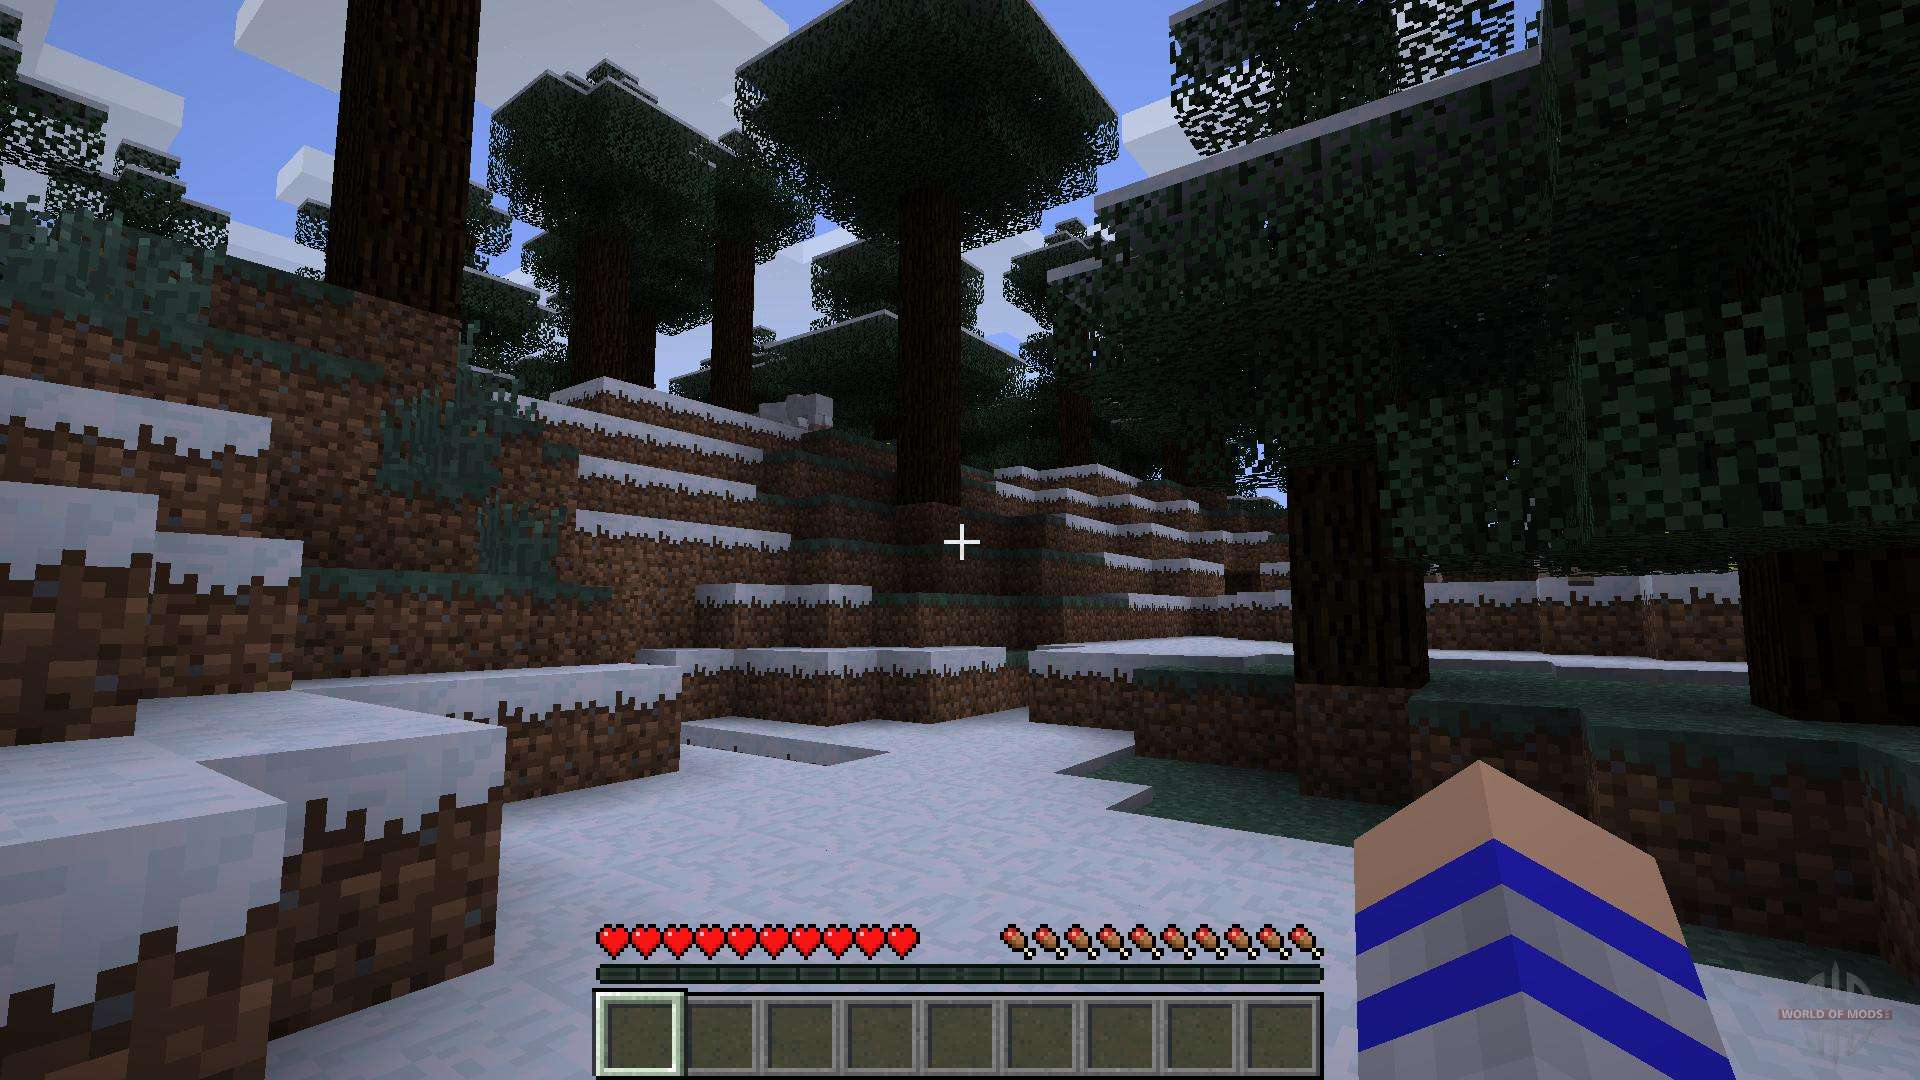 minecraft server 1.7 4 download